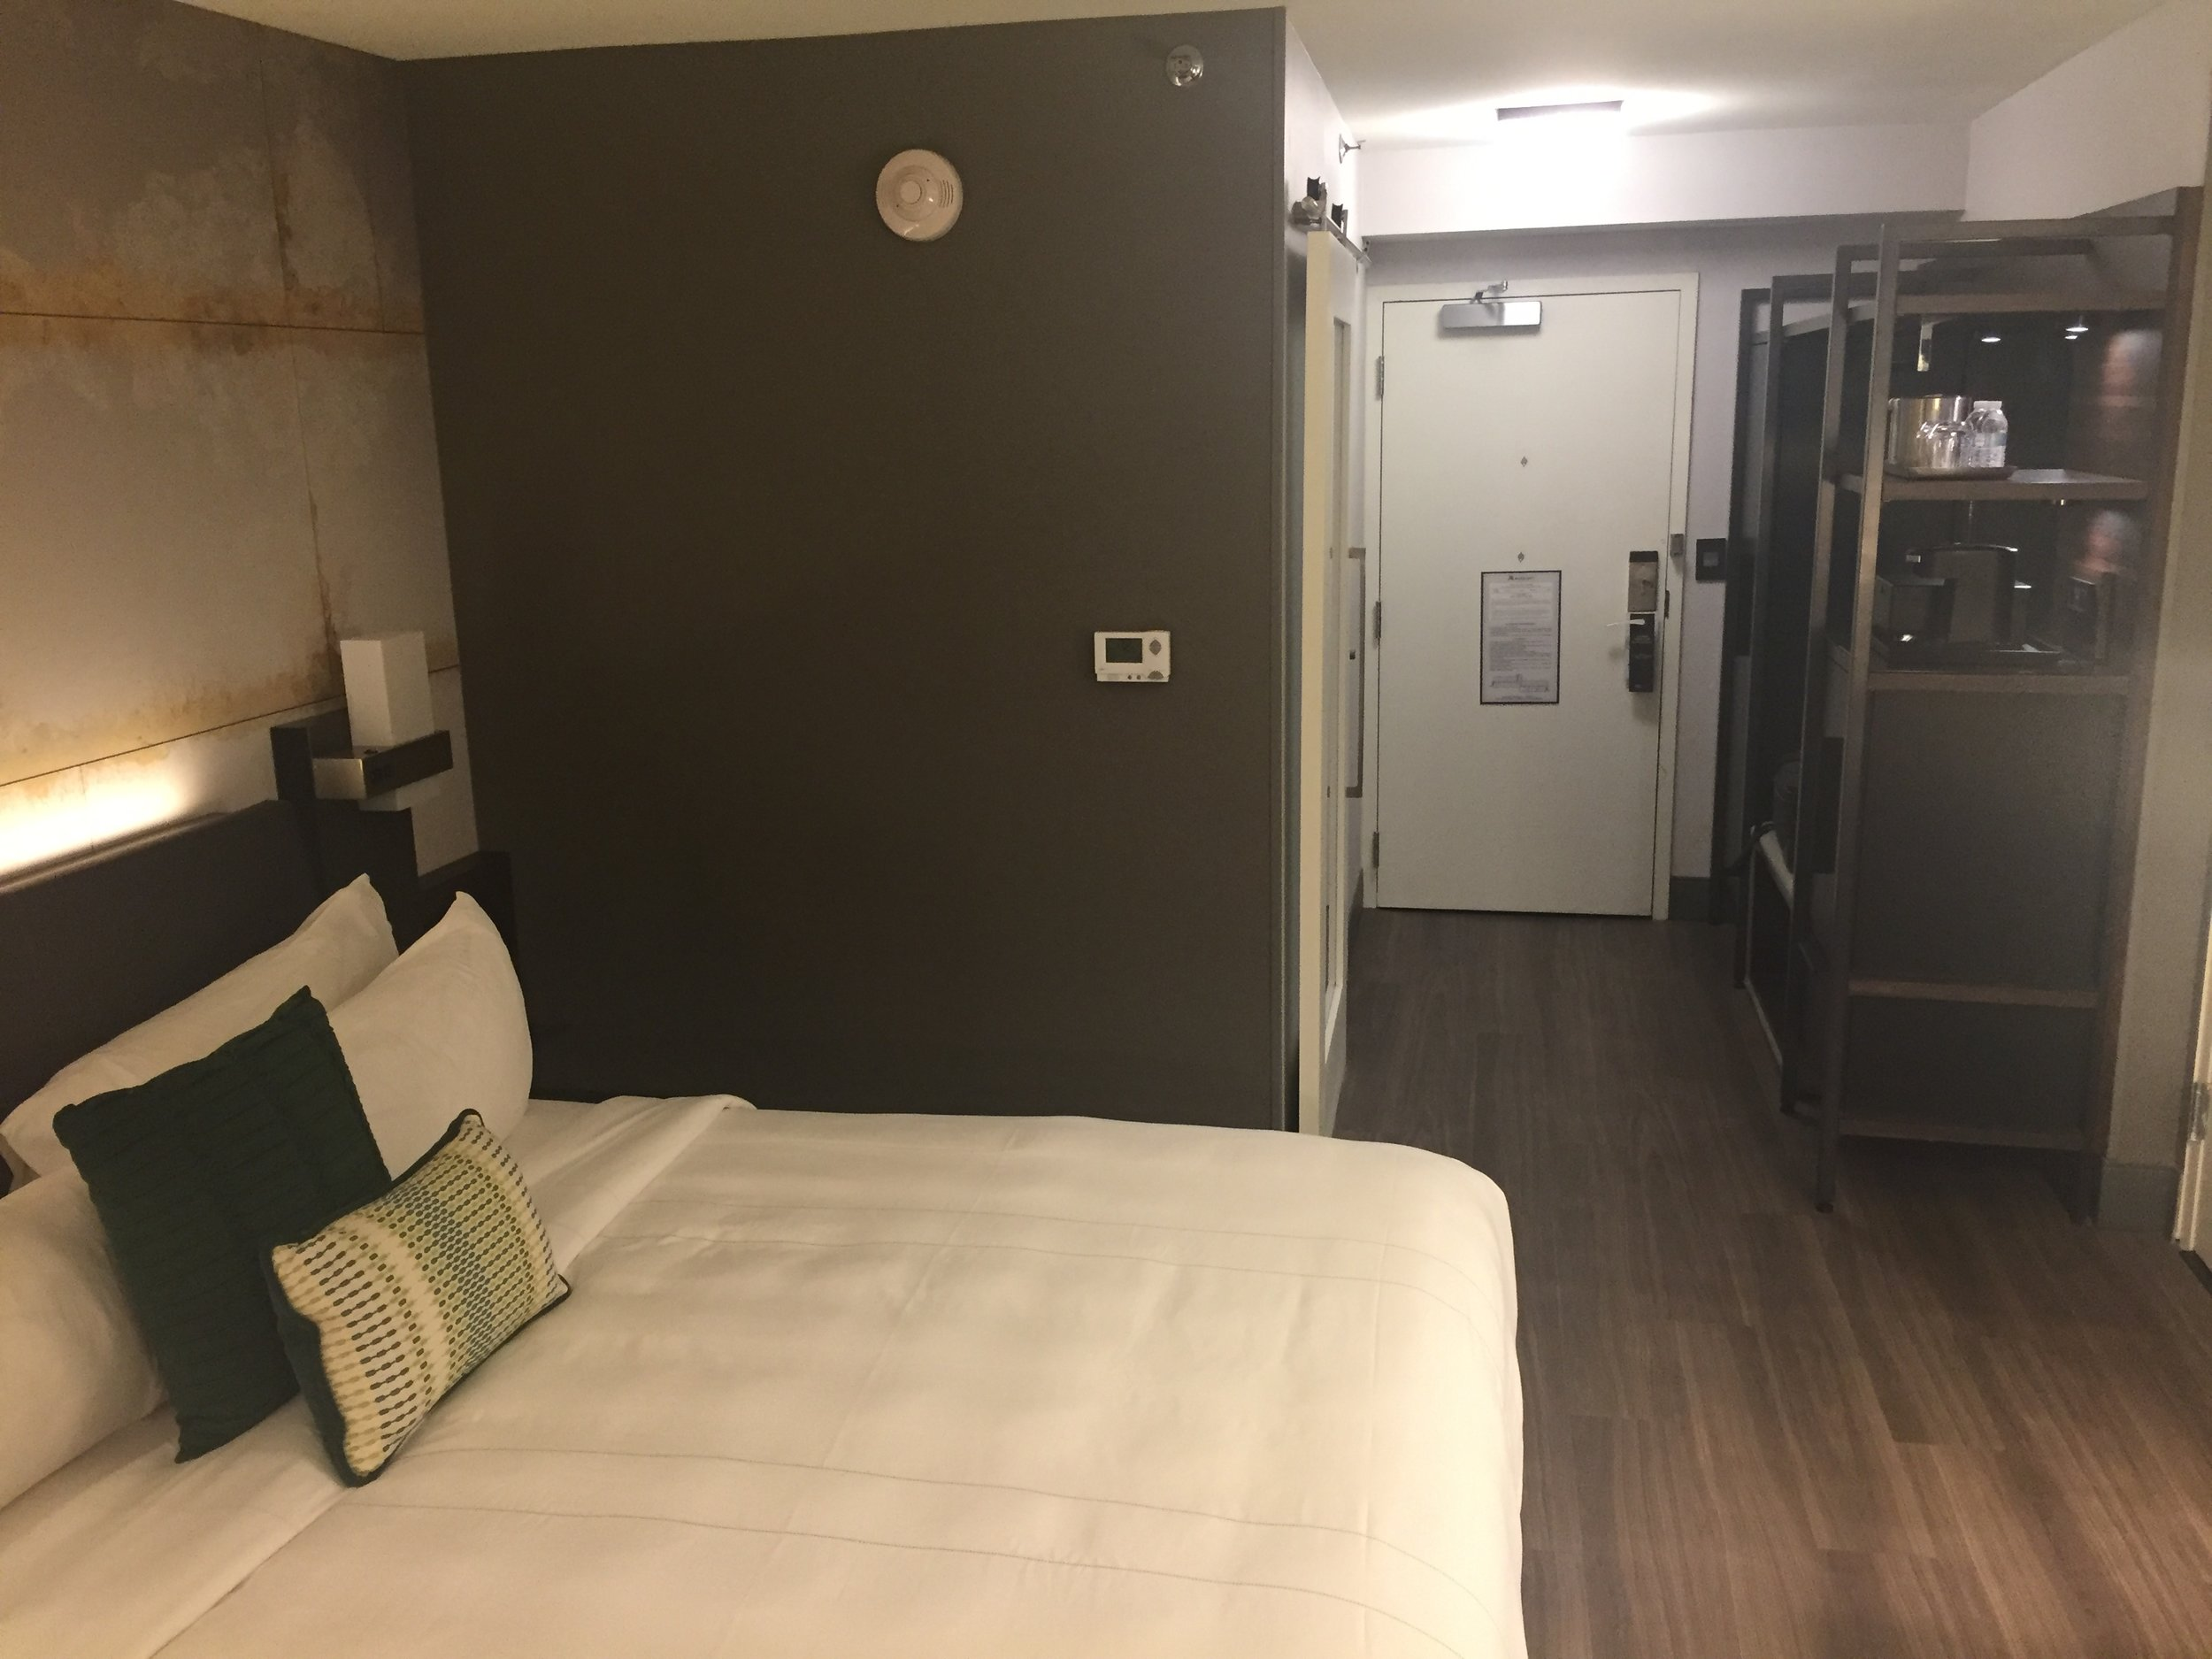 A convenience center included a wardrobe, drawers, safe, small refrigerator, a coffee station and space for a suitcase to be opened. The only carpeting was a small rug next to one side of the bed, so room cleanliness was outstanding.